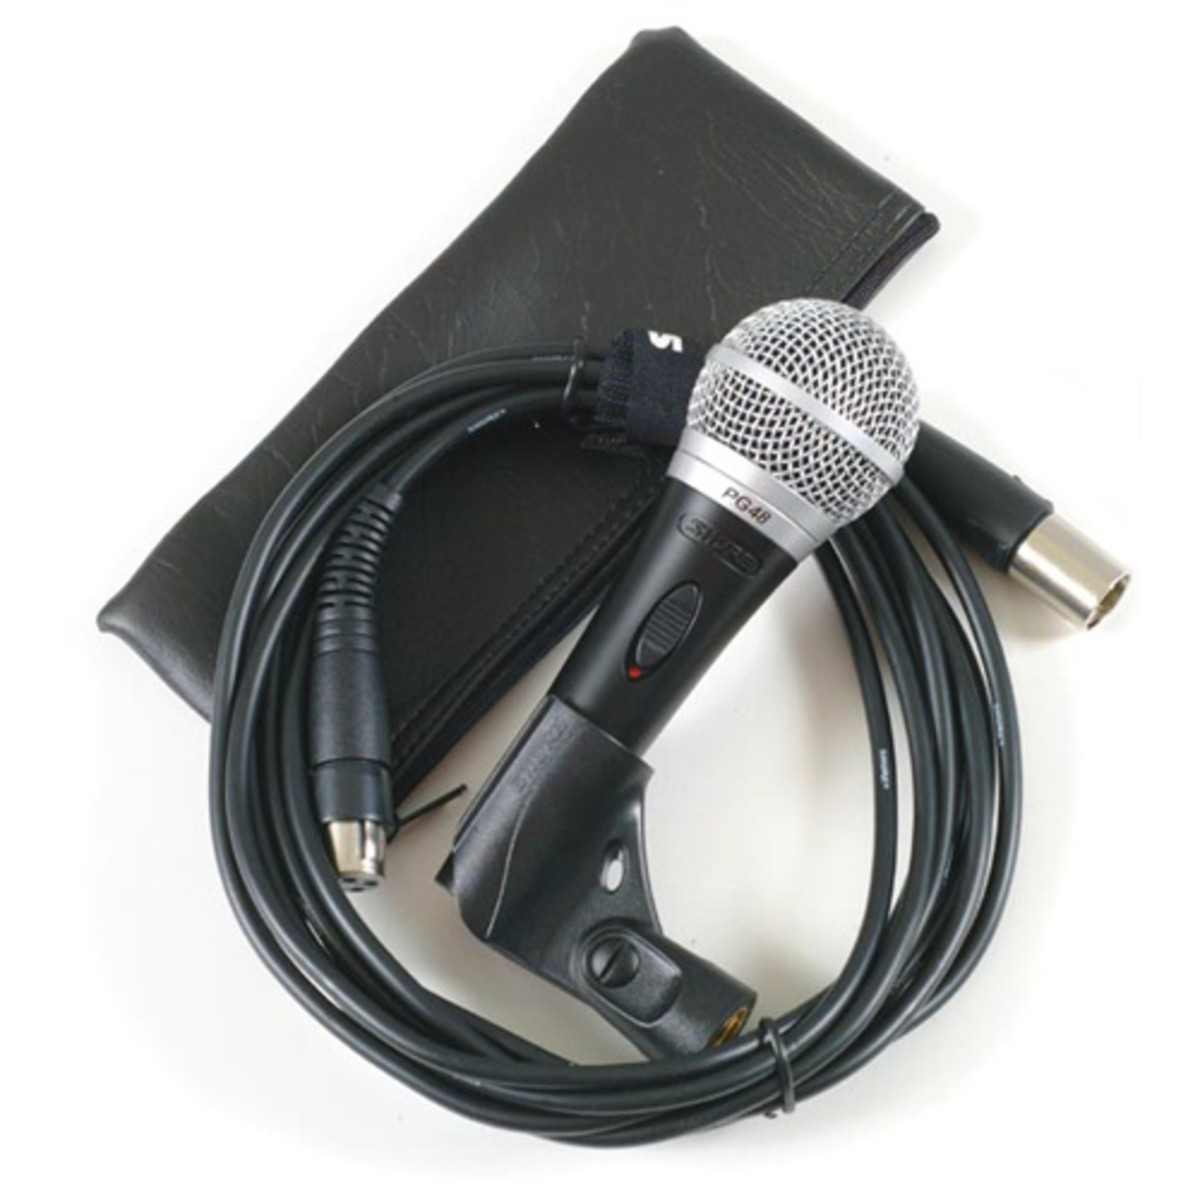 Shure Pg48 Dynamic Microphone With Xlr To Xlr Cable At